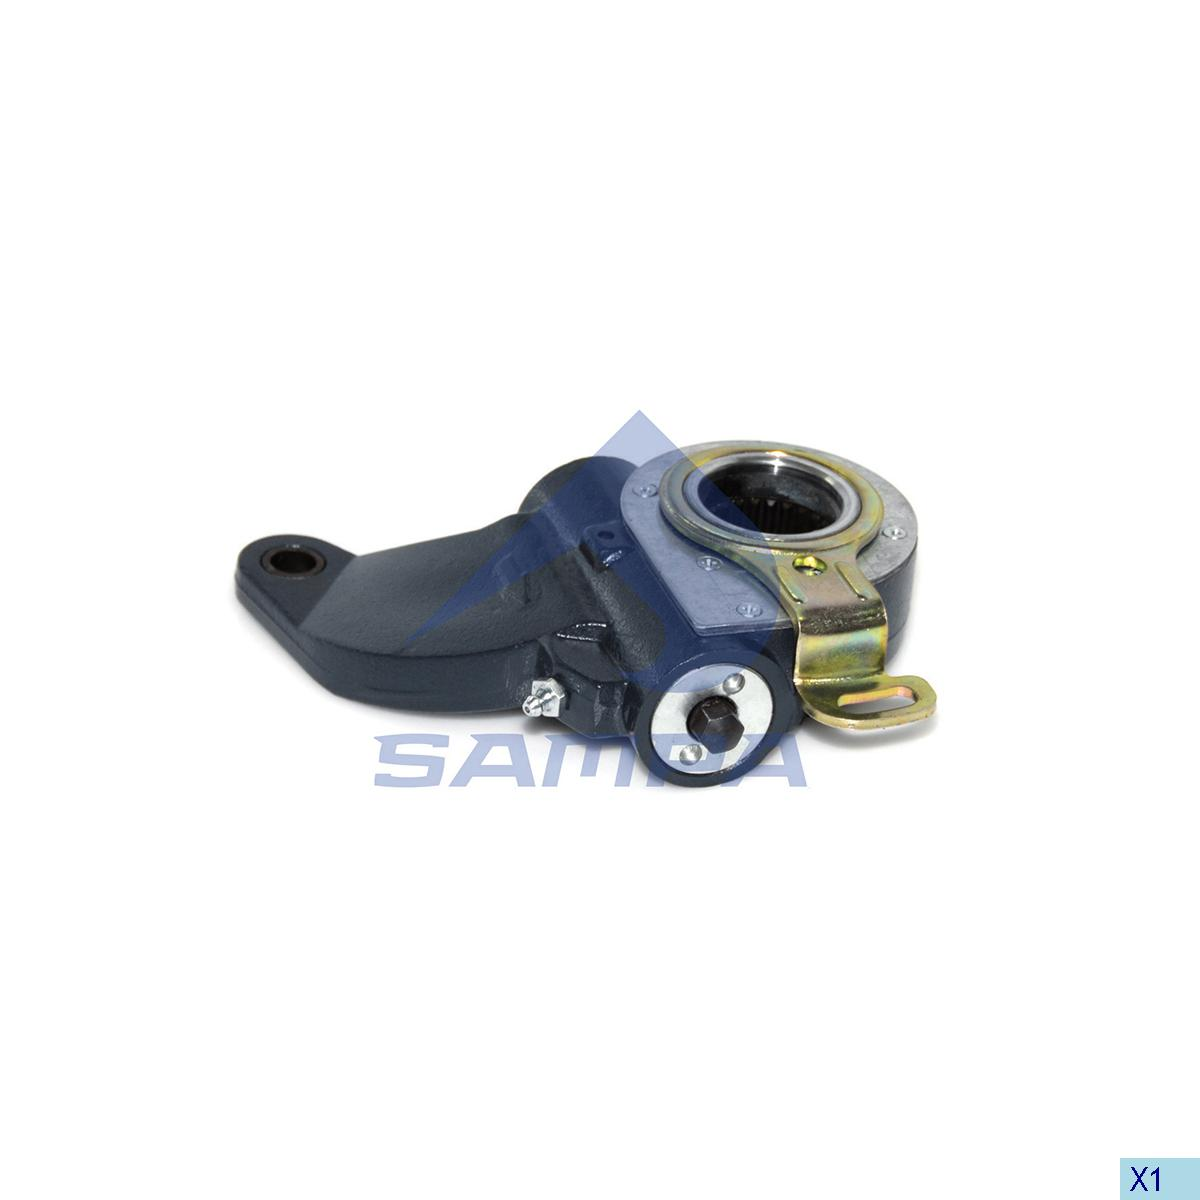 Brake Slack Adjuster, Man, Brake